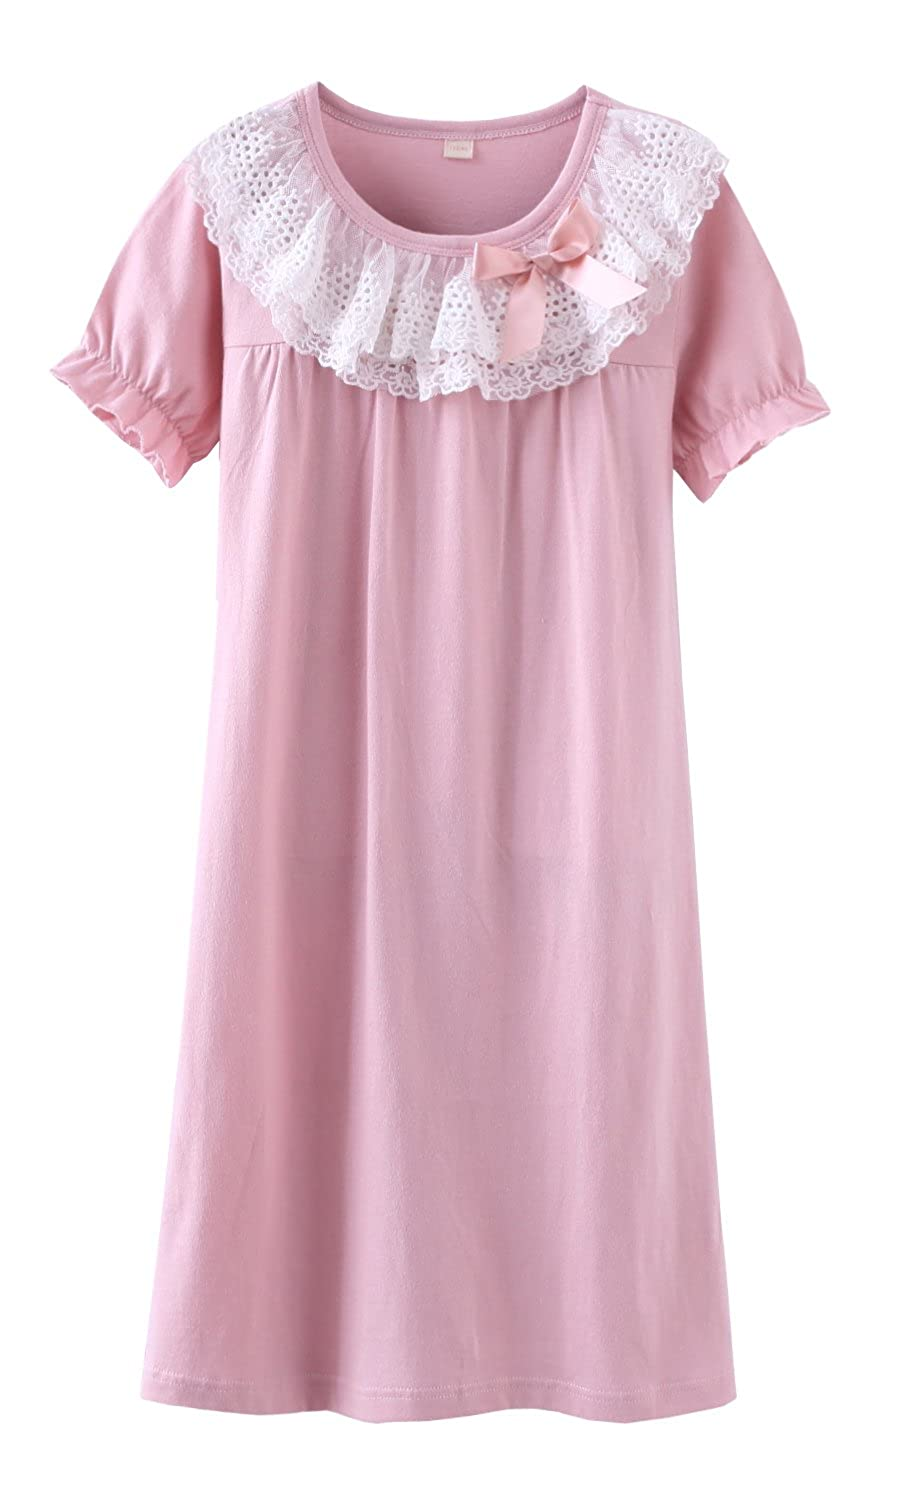 ABClothing Girls' Lace Nighties & Bowknot Nightgowns 100% Cotton Sleepwear for Toddler 5-14 Years